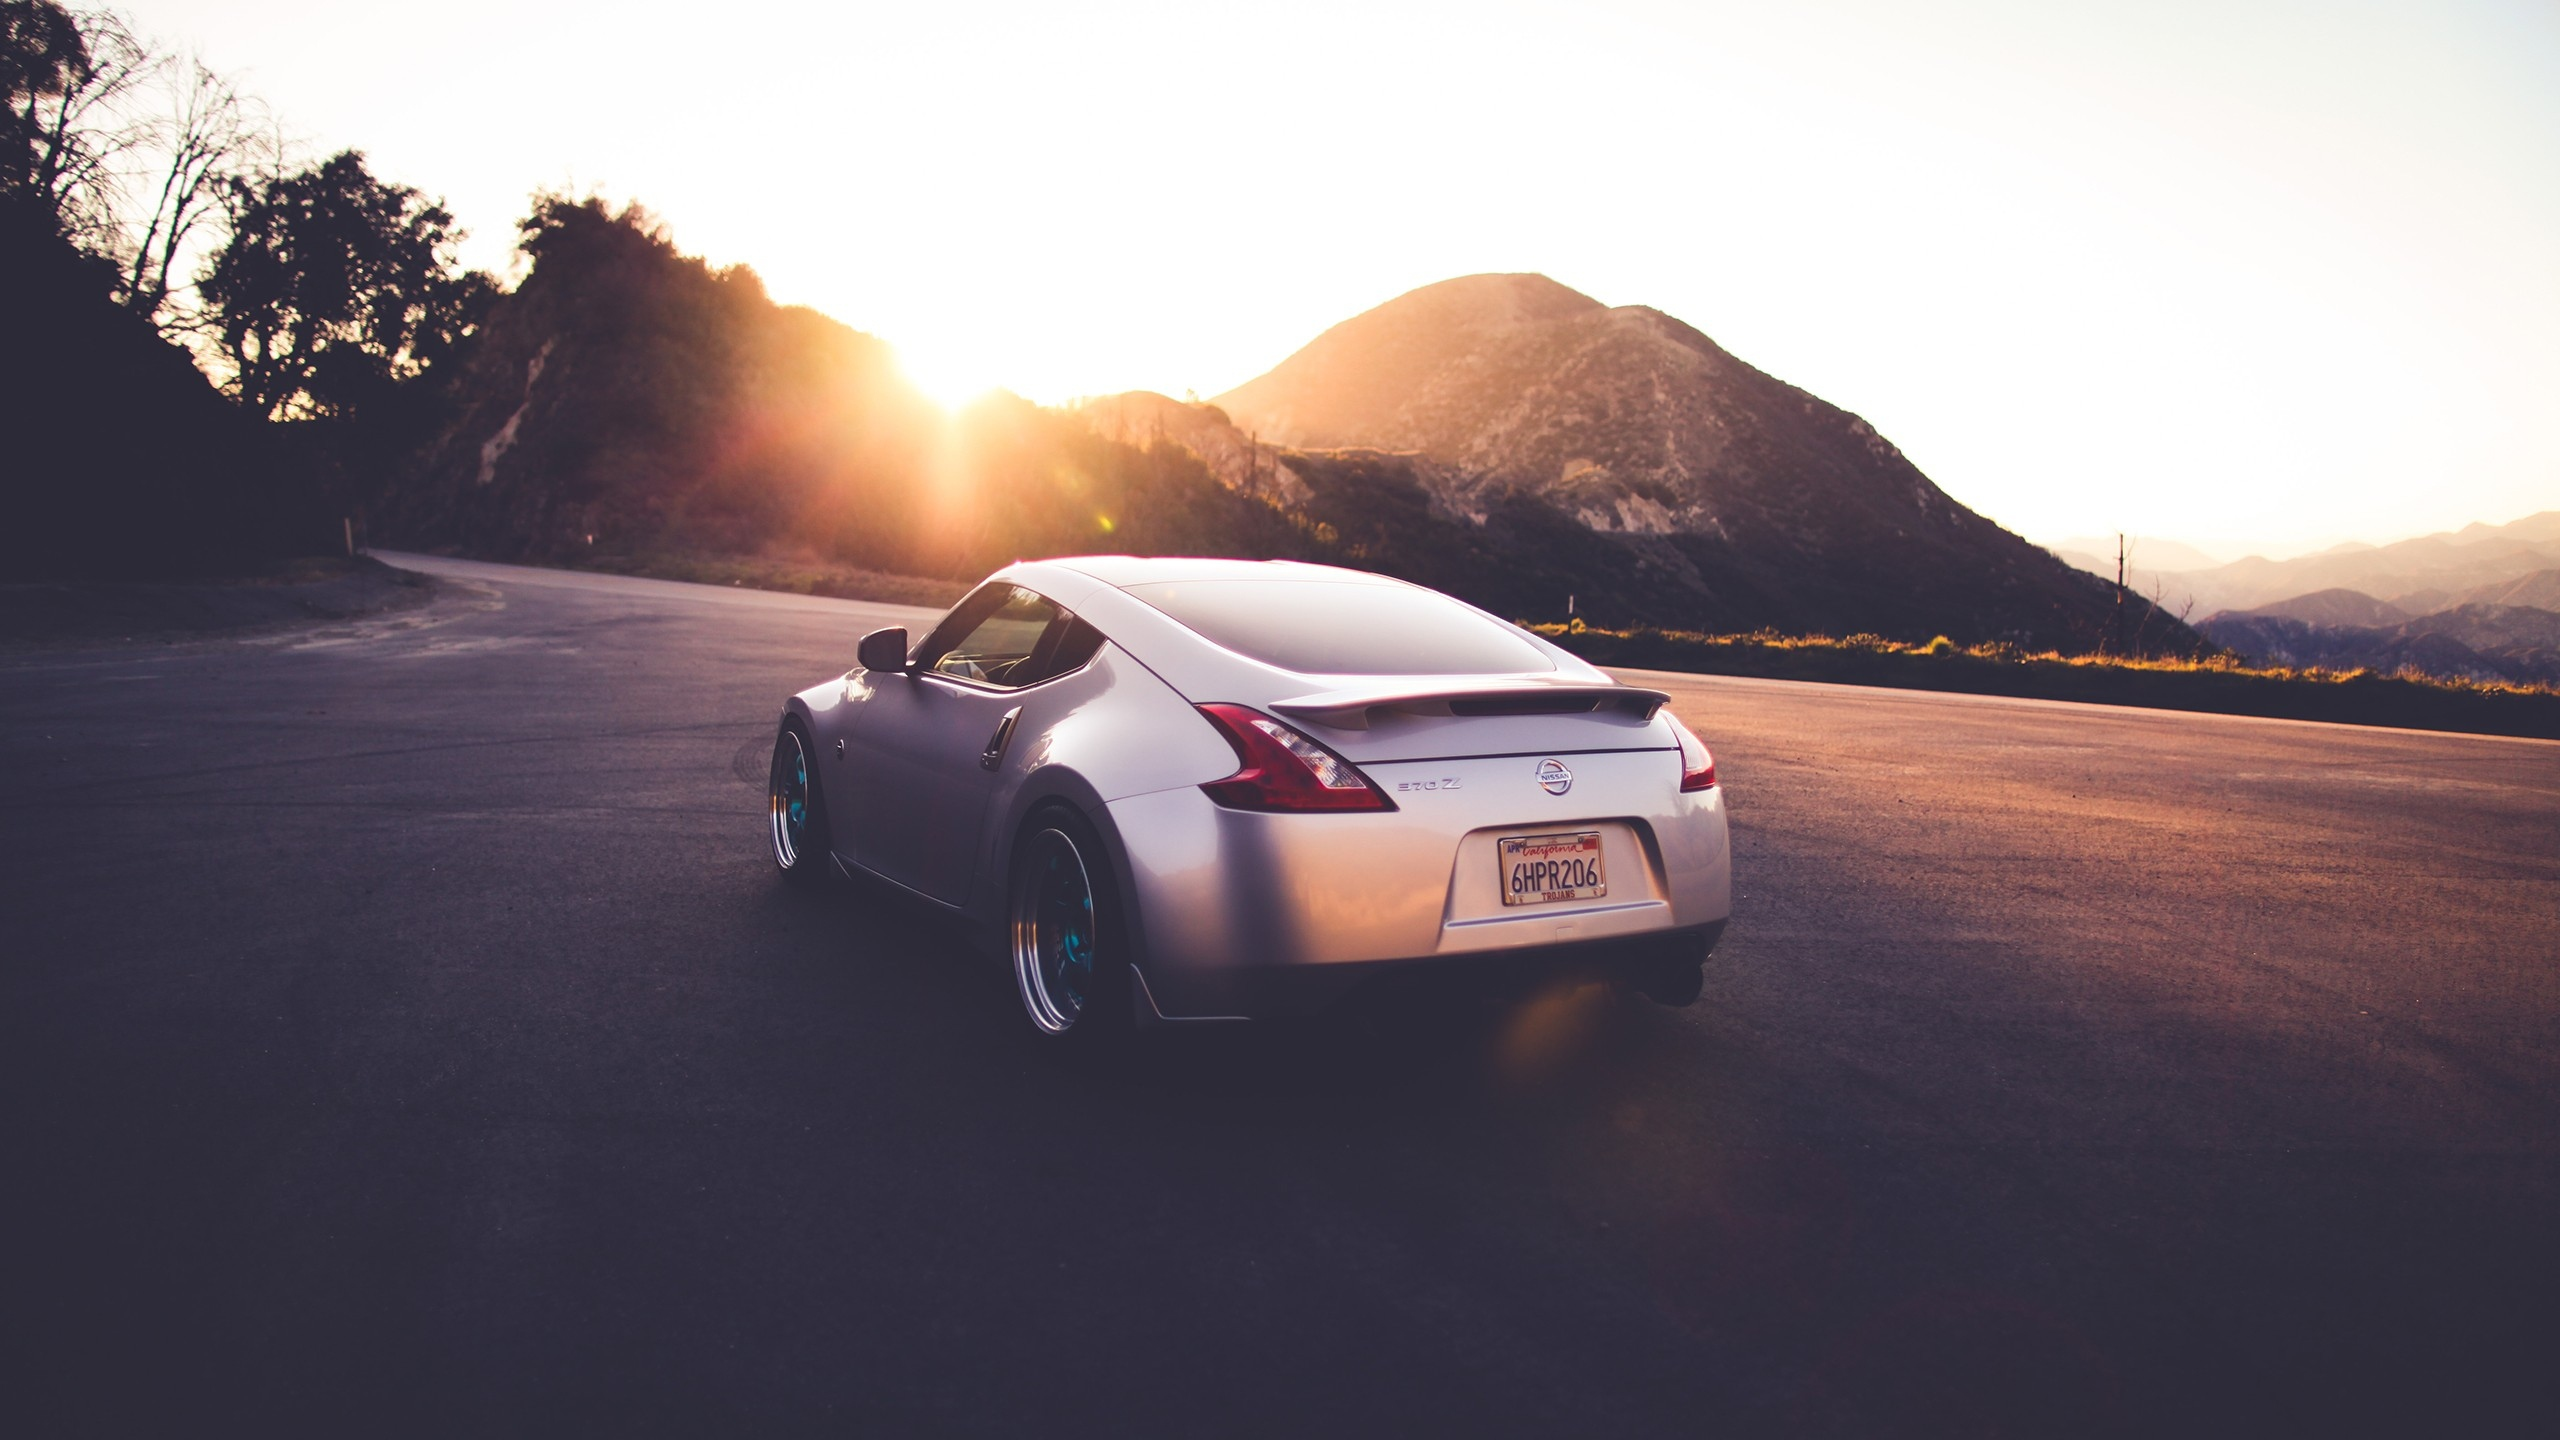 370Z Background